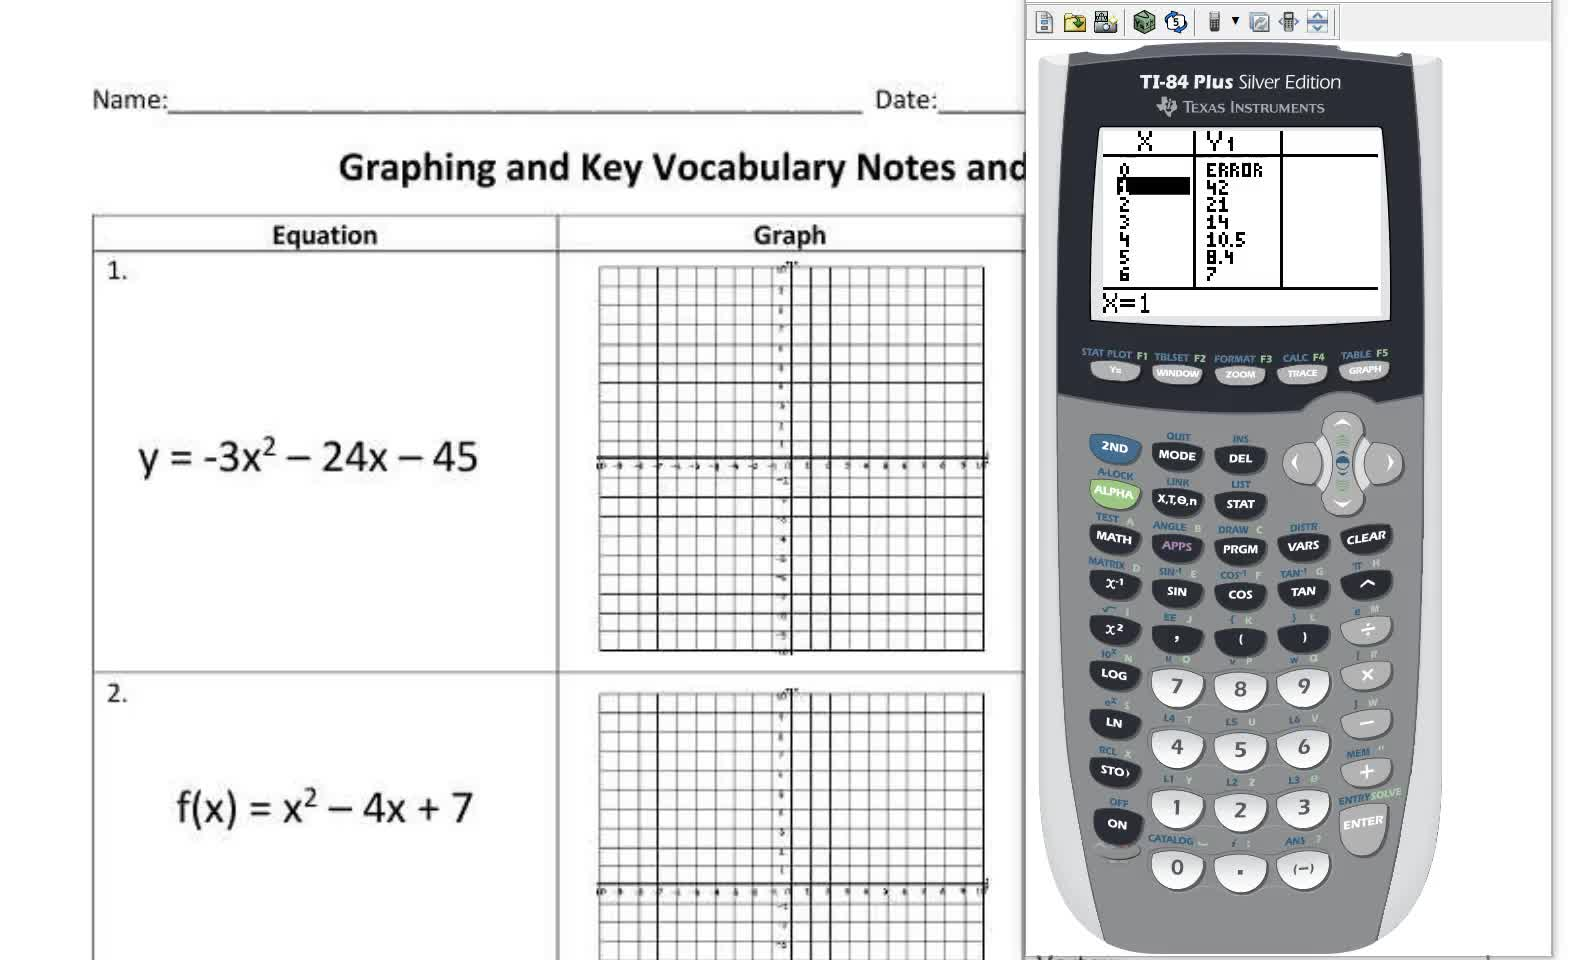 Graphing Quadratics in Calculator and Key Vocabulary